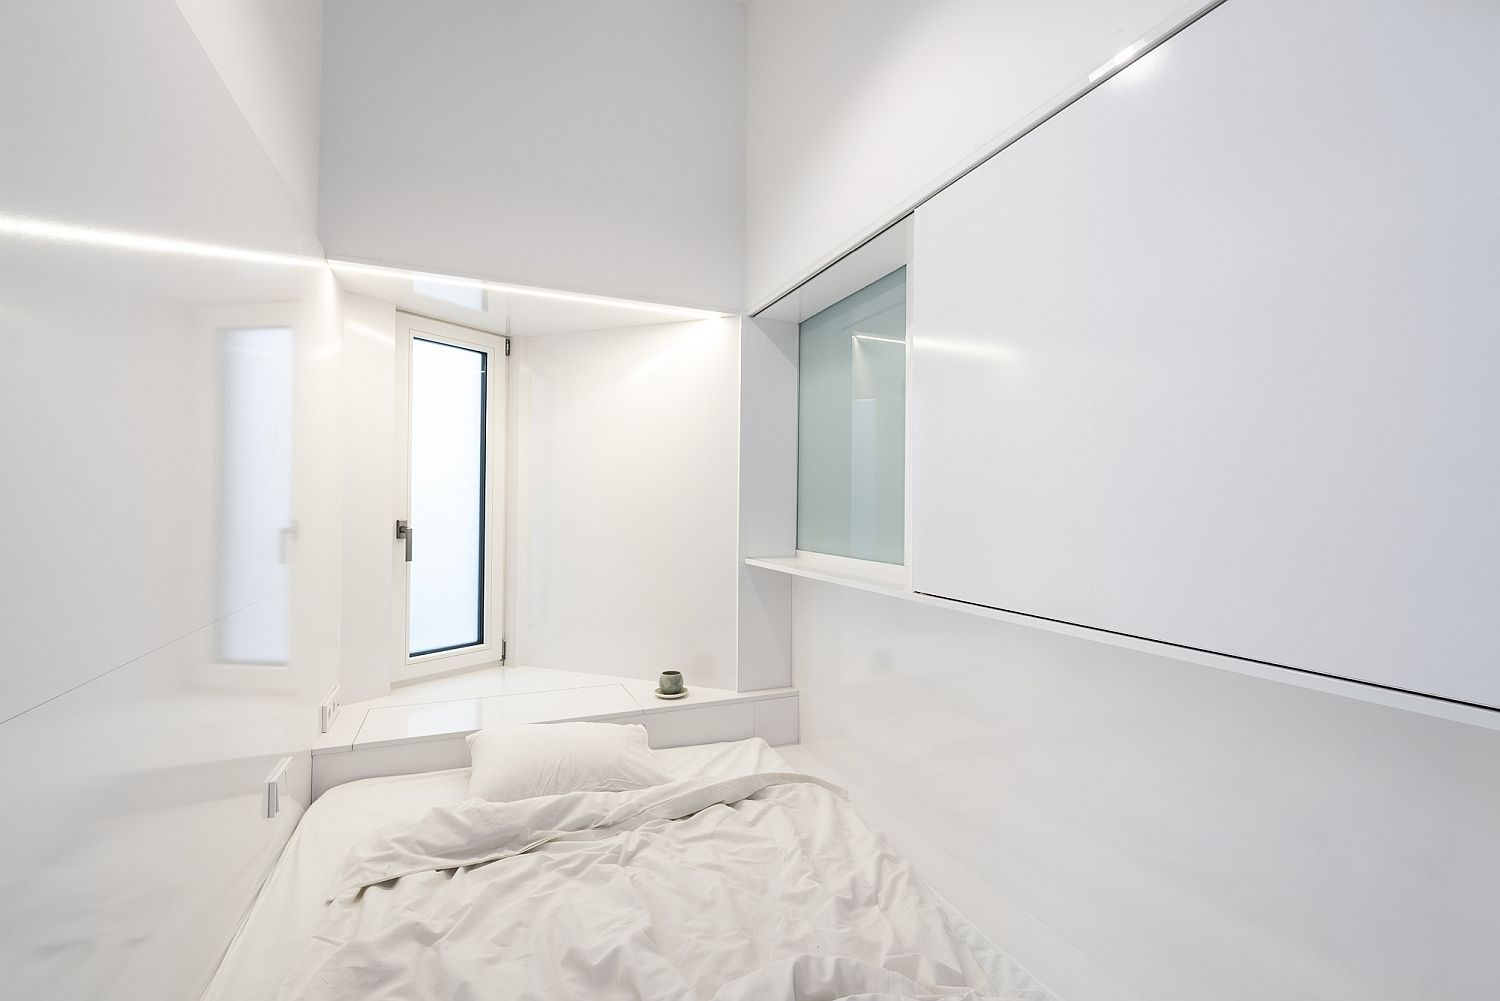 Nook above the headboard and window give the monochromatic bedroom a bright aura